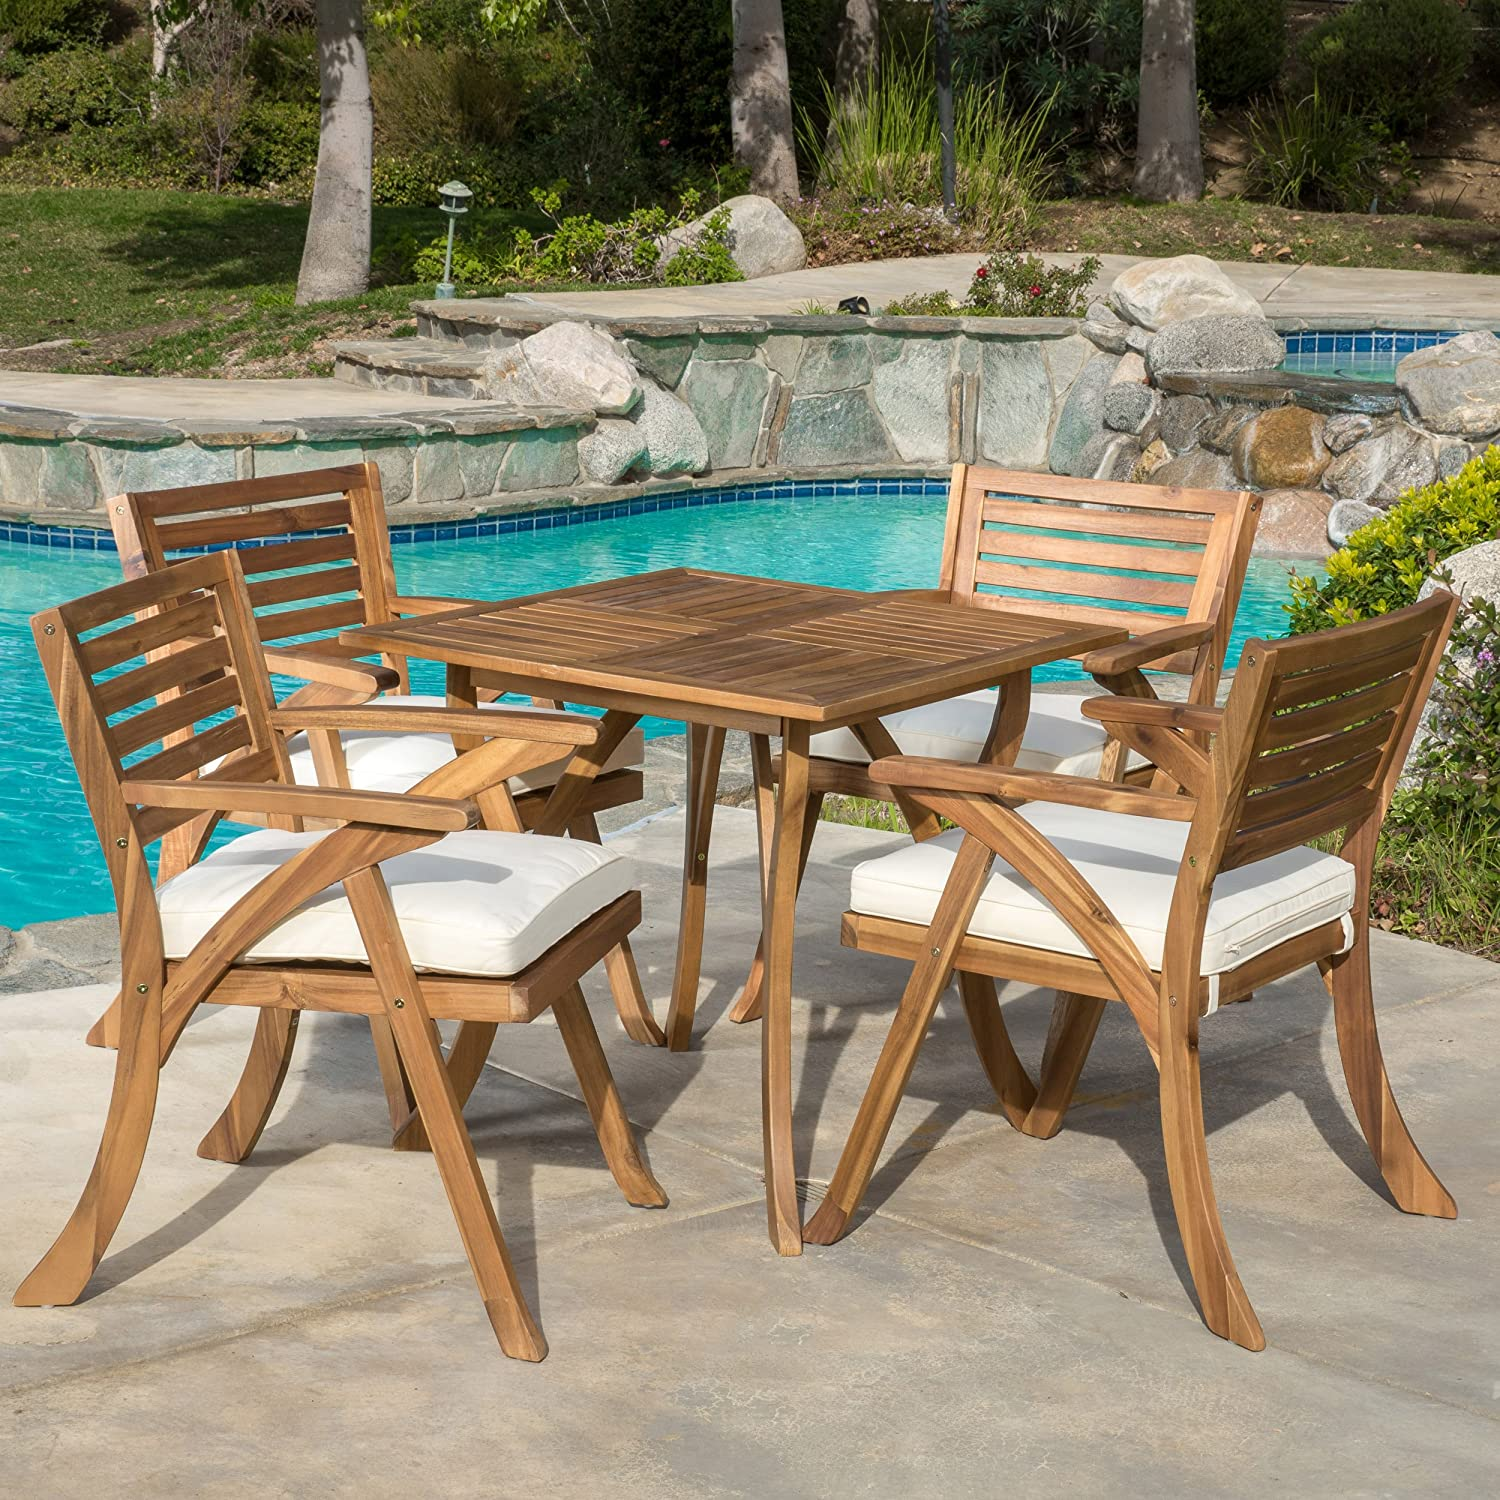 Homall 11 Pieces Patio Furniture Dining Set Patio Wicker Rattan Chair Sets Outdoor Furniture Cushioned Tempered Glass W Ottoman Brown PE Rattan